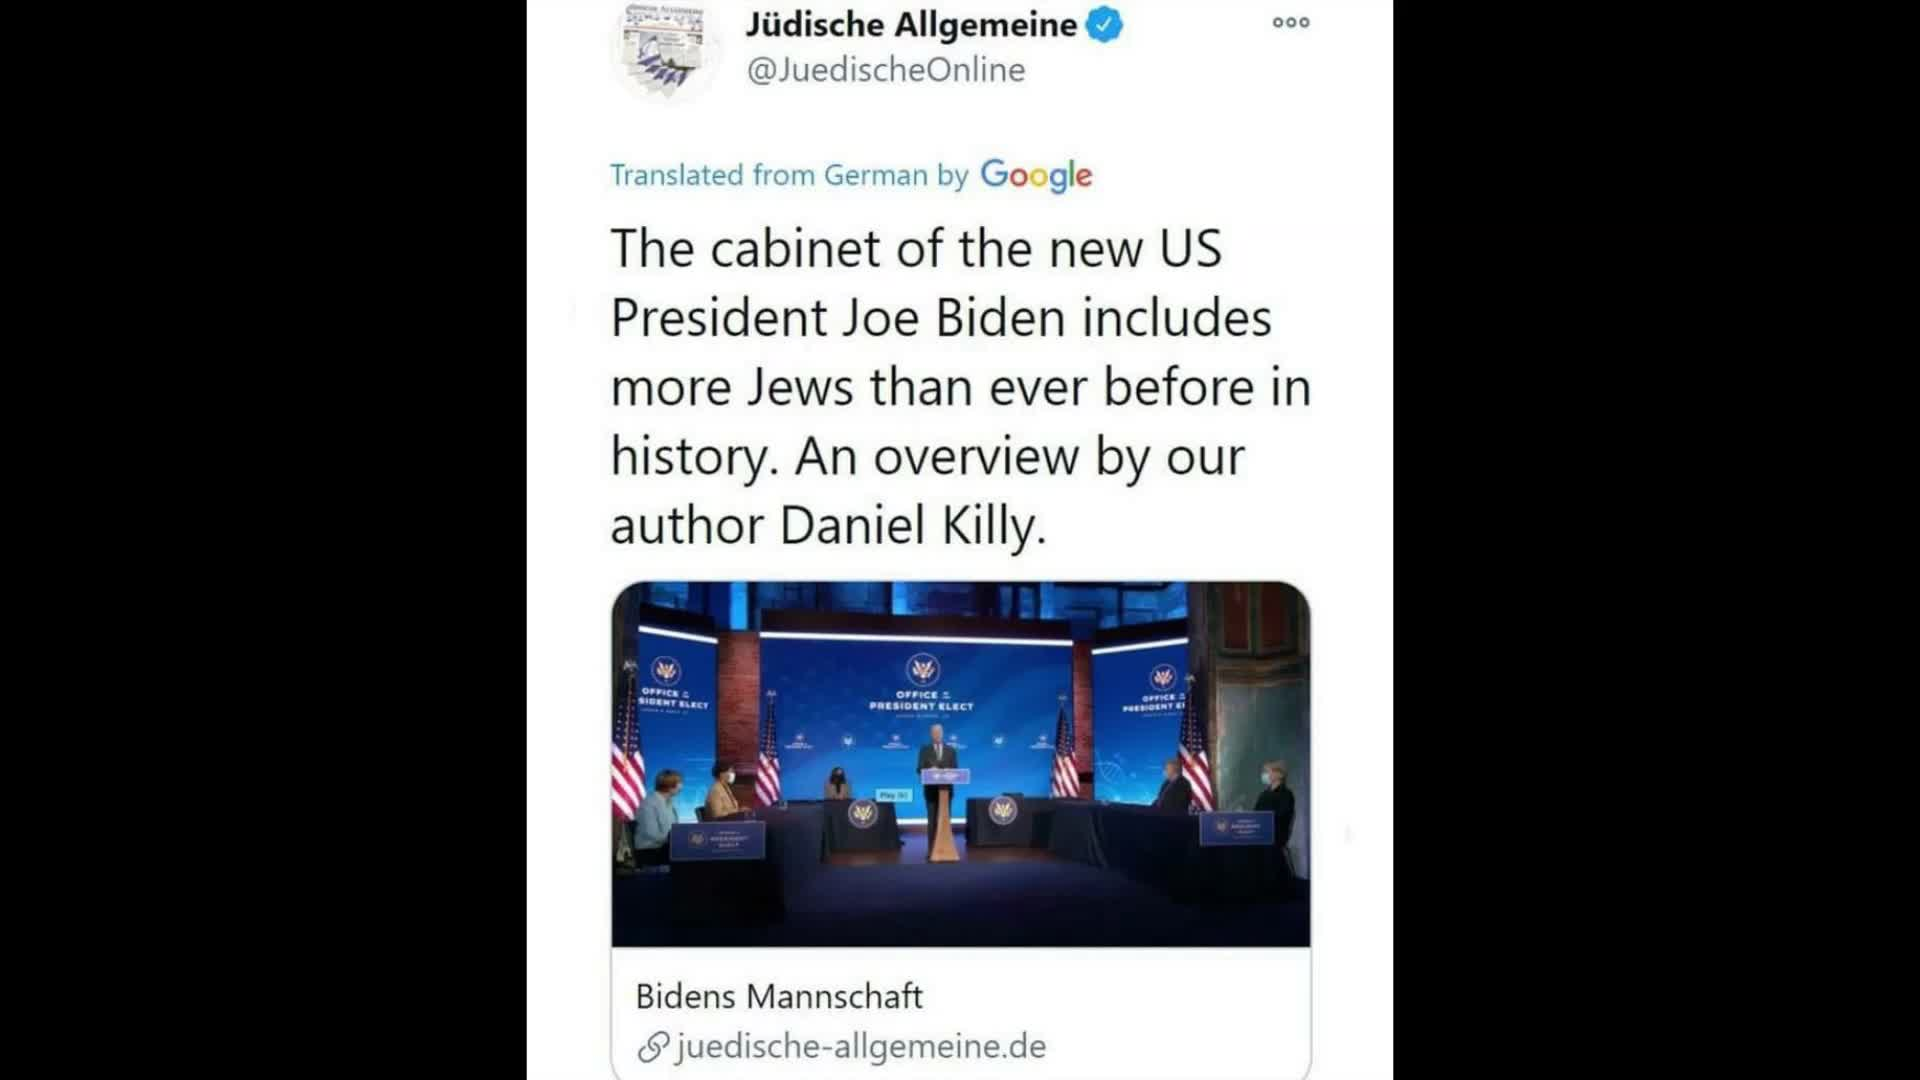 Jews have total control of America